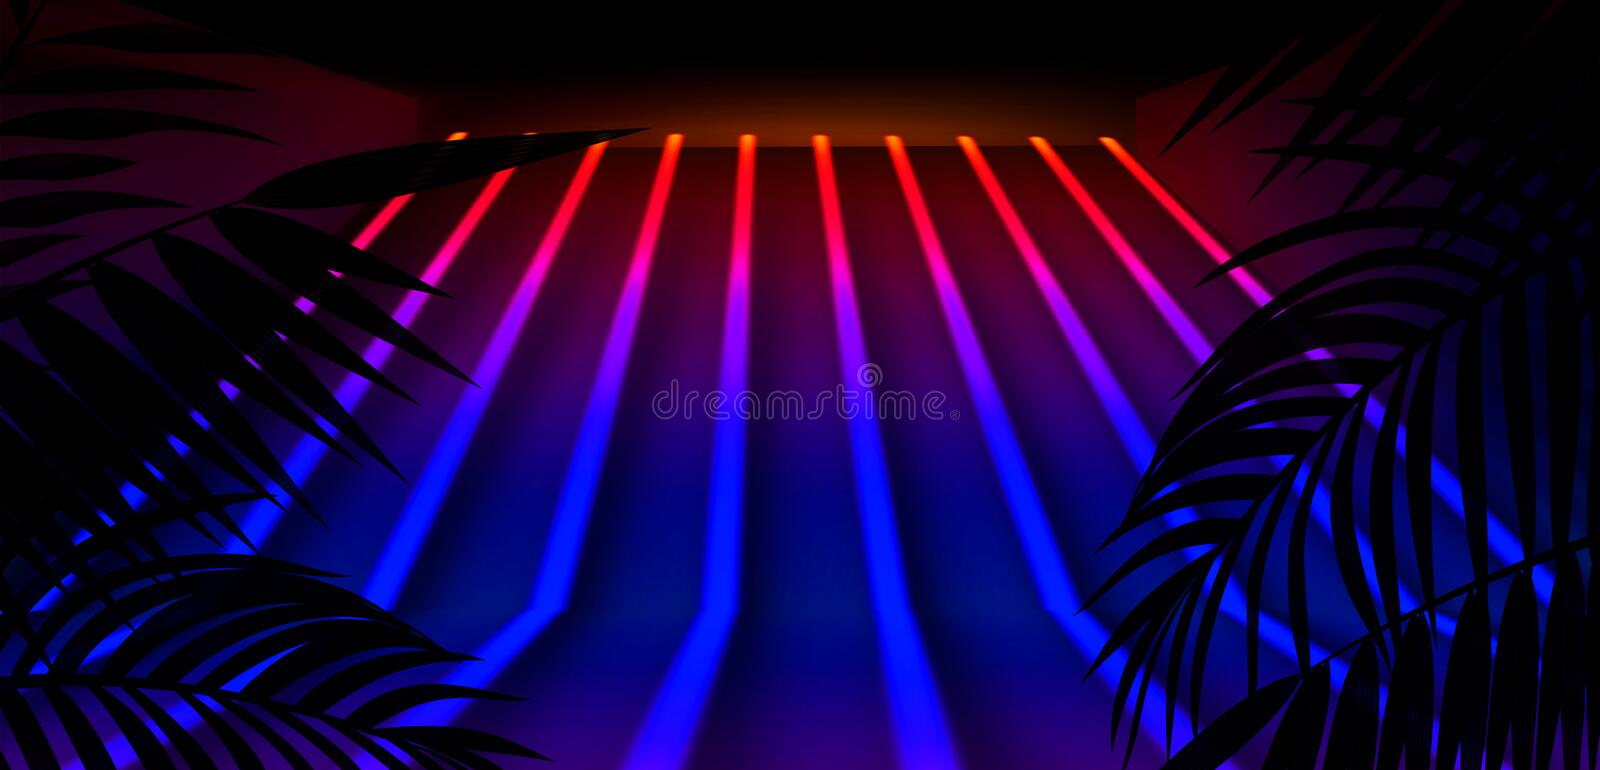 Background of the dark room, tunnel, corridor, neon light, lamps, tropical leaves. royalty free illustration